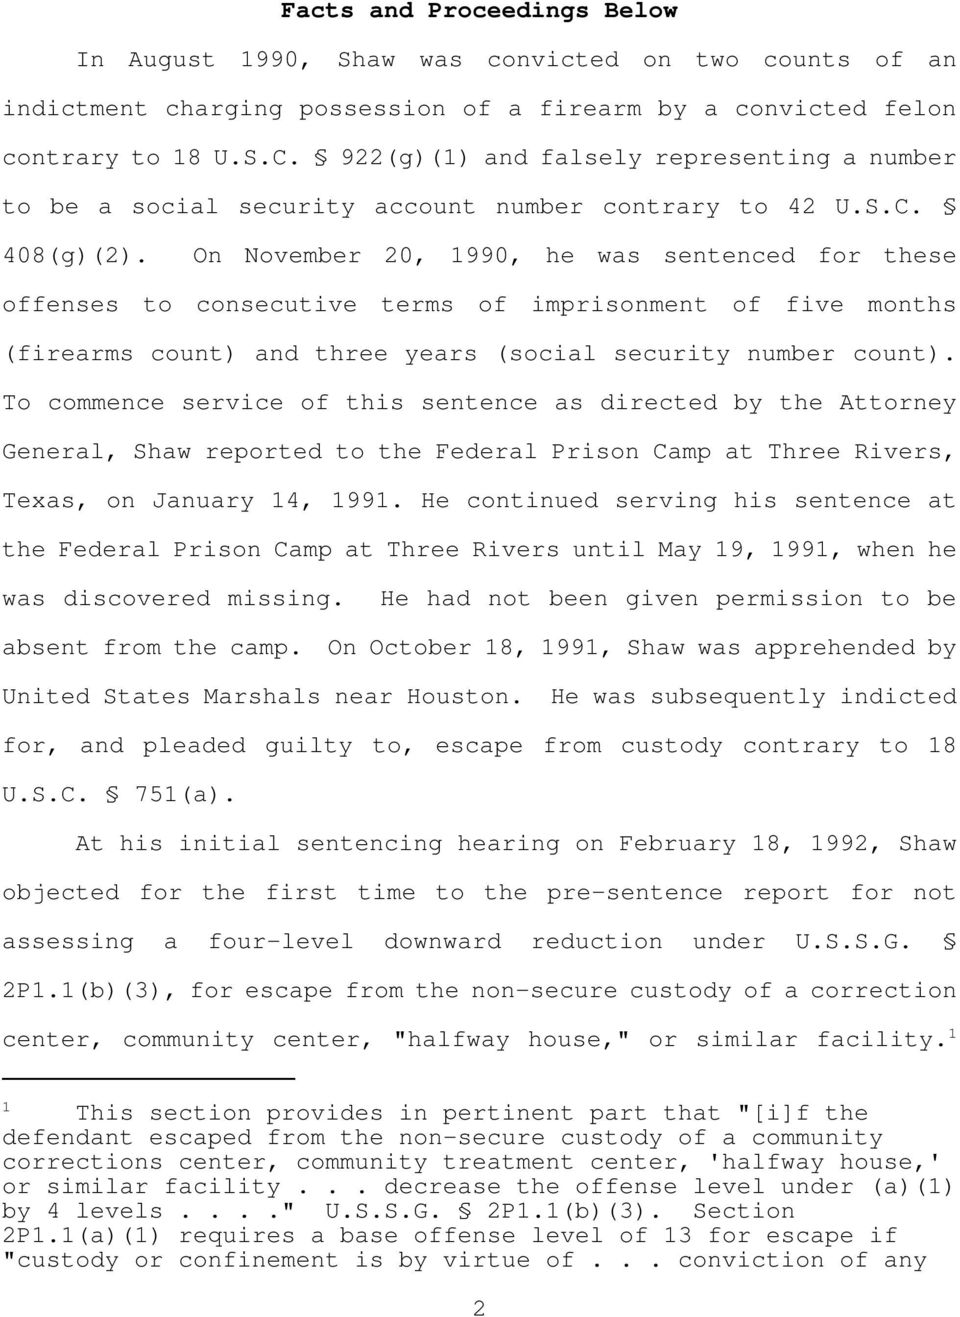 On November 20, 1990, he was sentenced for these offenses to consecutive terms of imprisonment of five months (firearms count) and three years (social security number count).